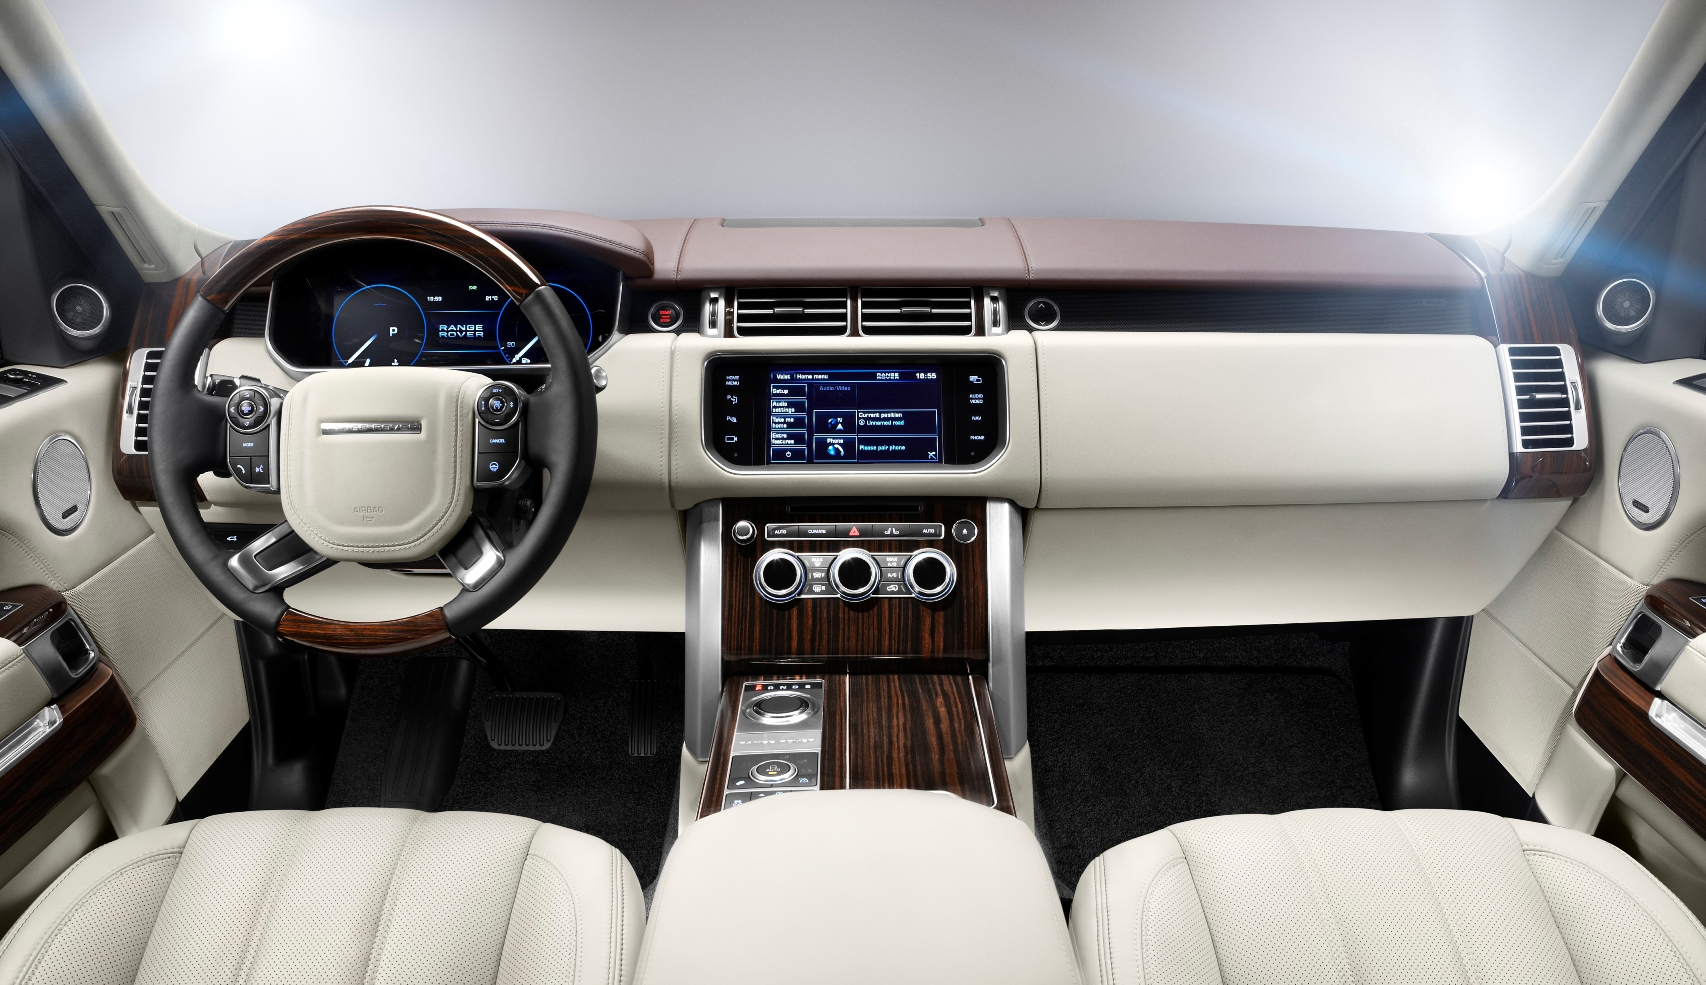 Range Rover bwin aktie dividende bwin Promotion Code 2015 Convertible